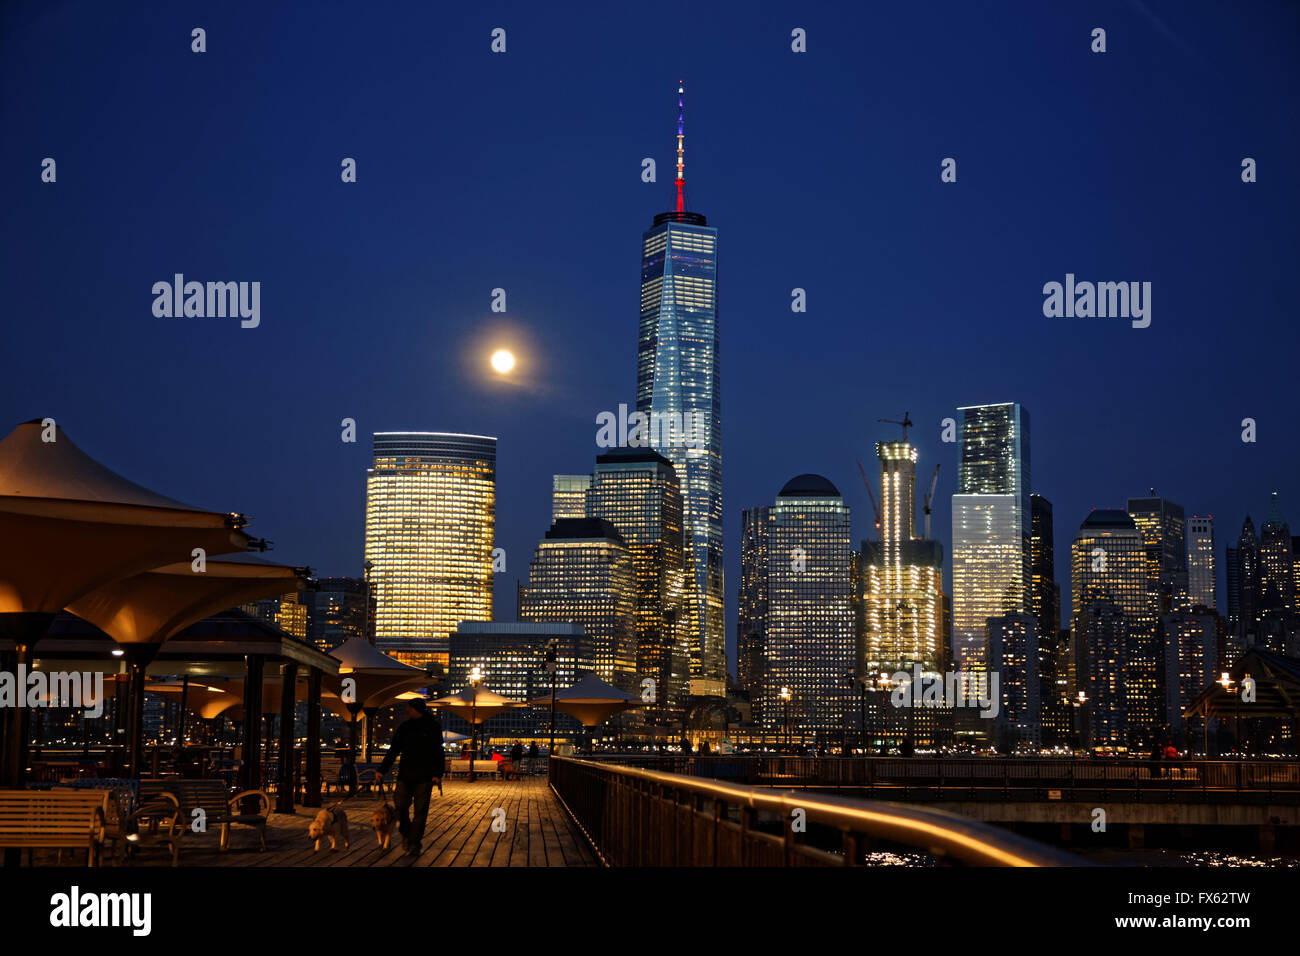 The moon rises over the World Trade Center in lower Manhattan, New York.  photo by Trevor Collens - Stock Image